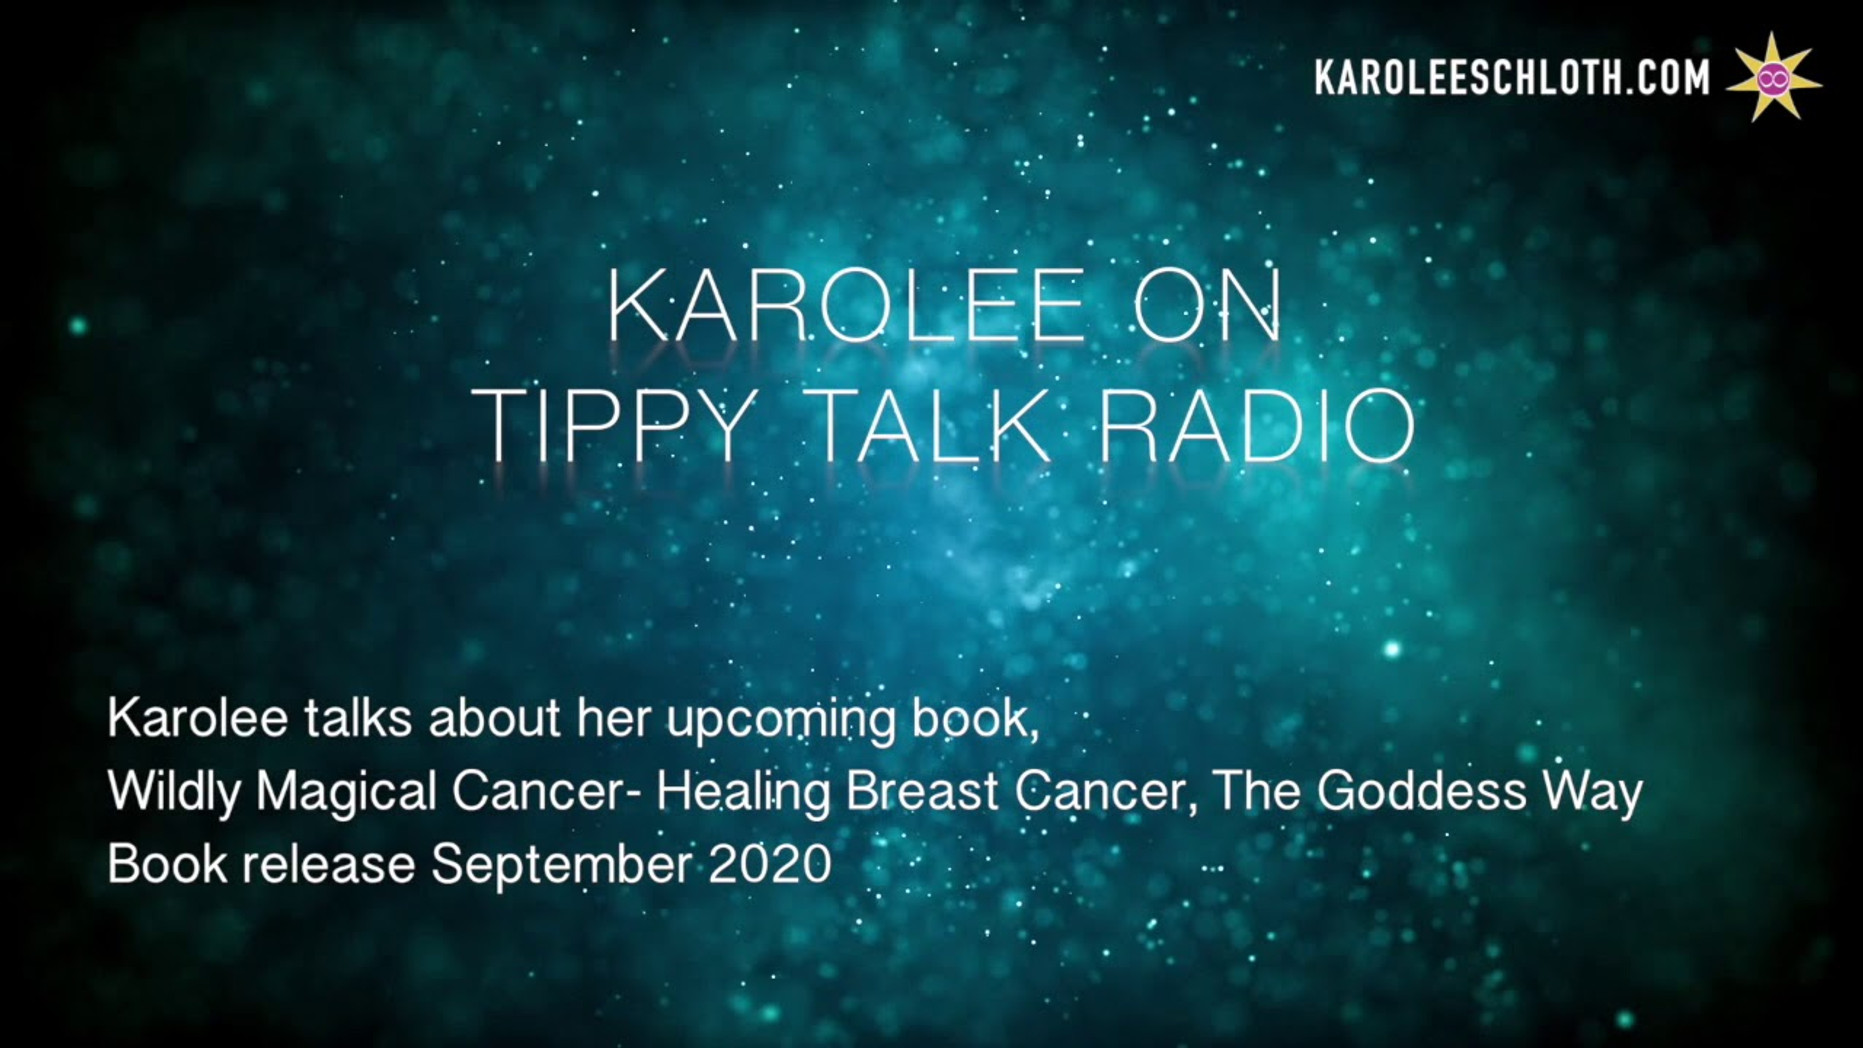 Karolee on Tippy Talk Radio